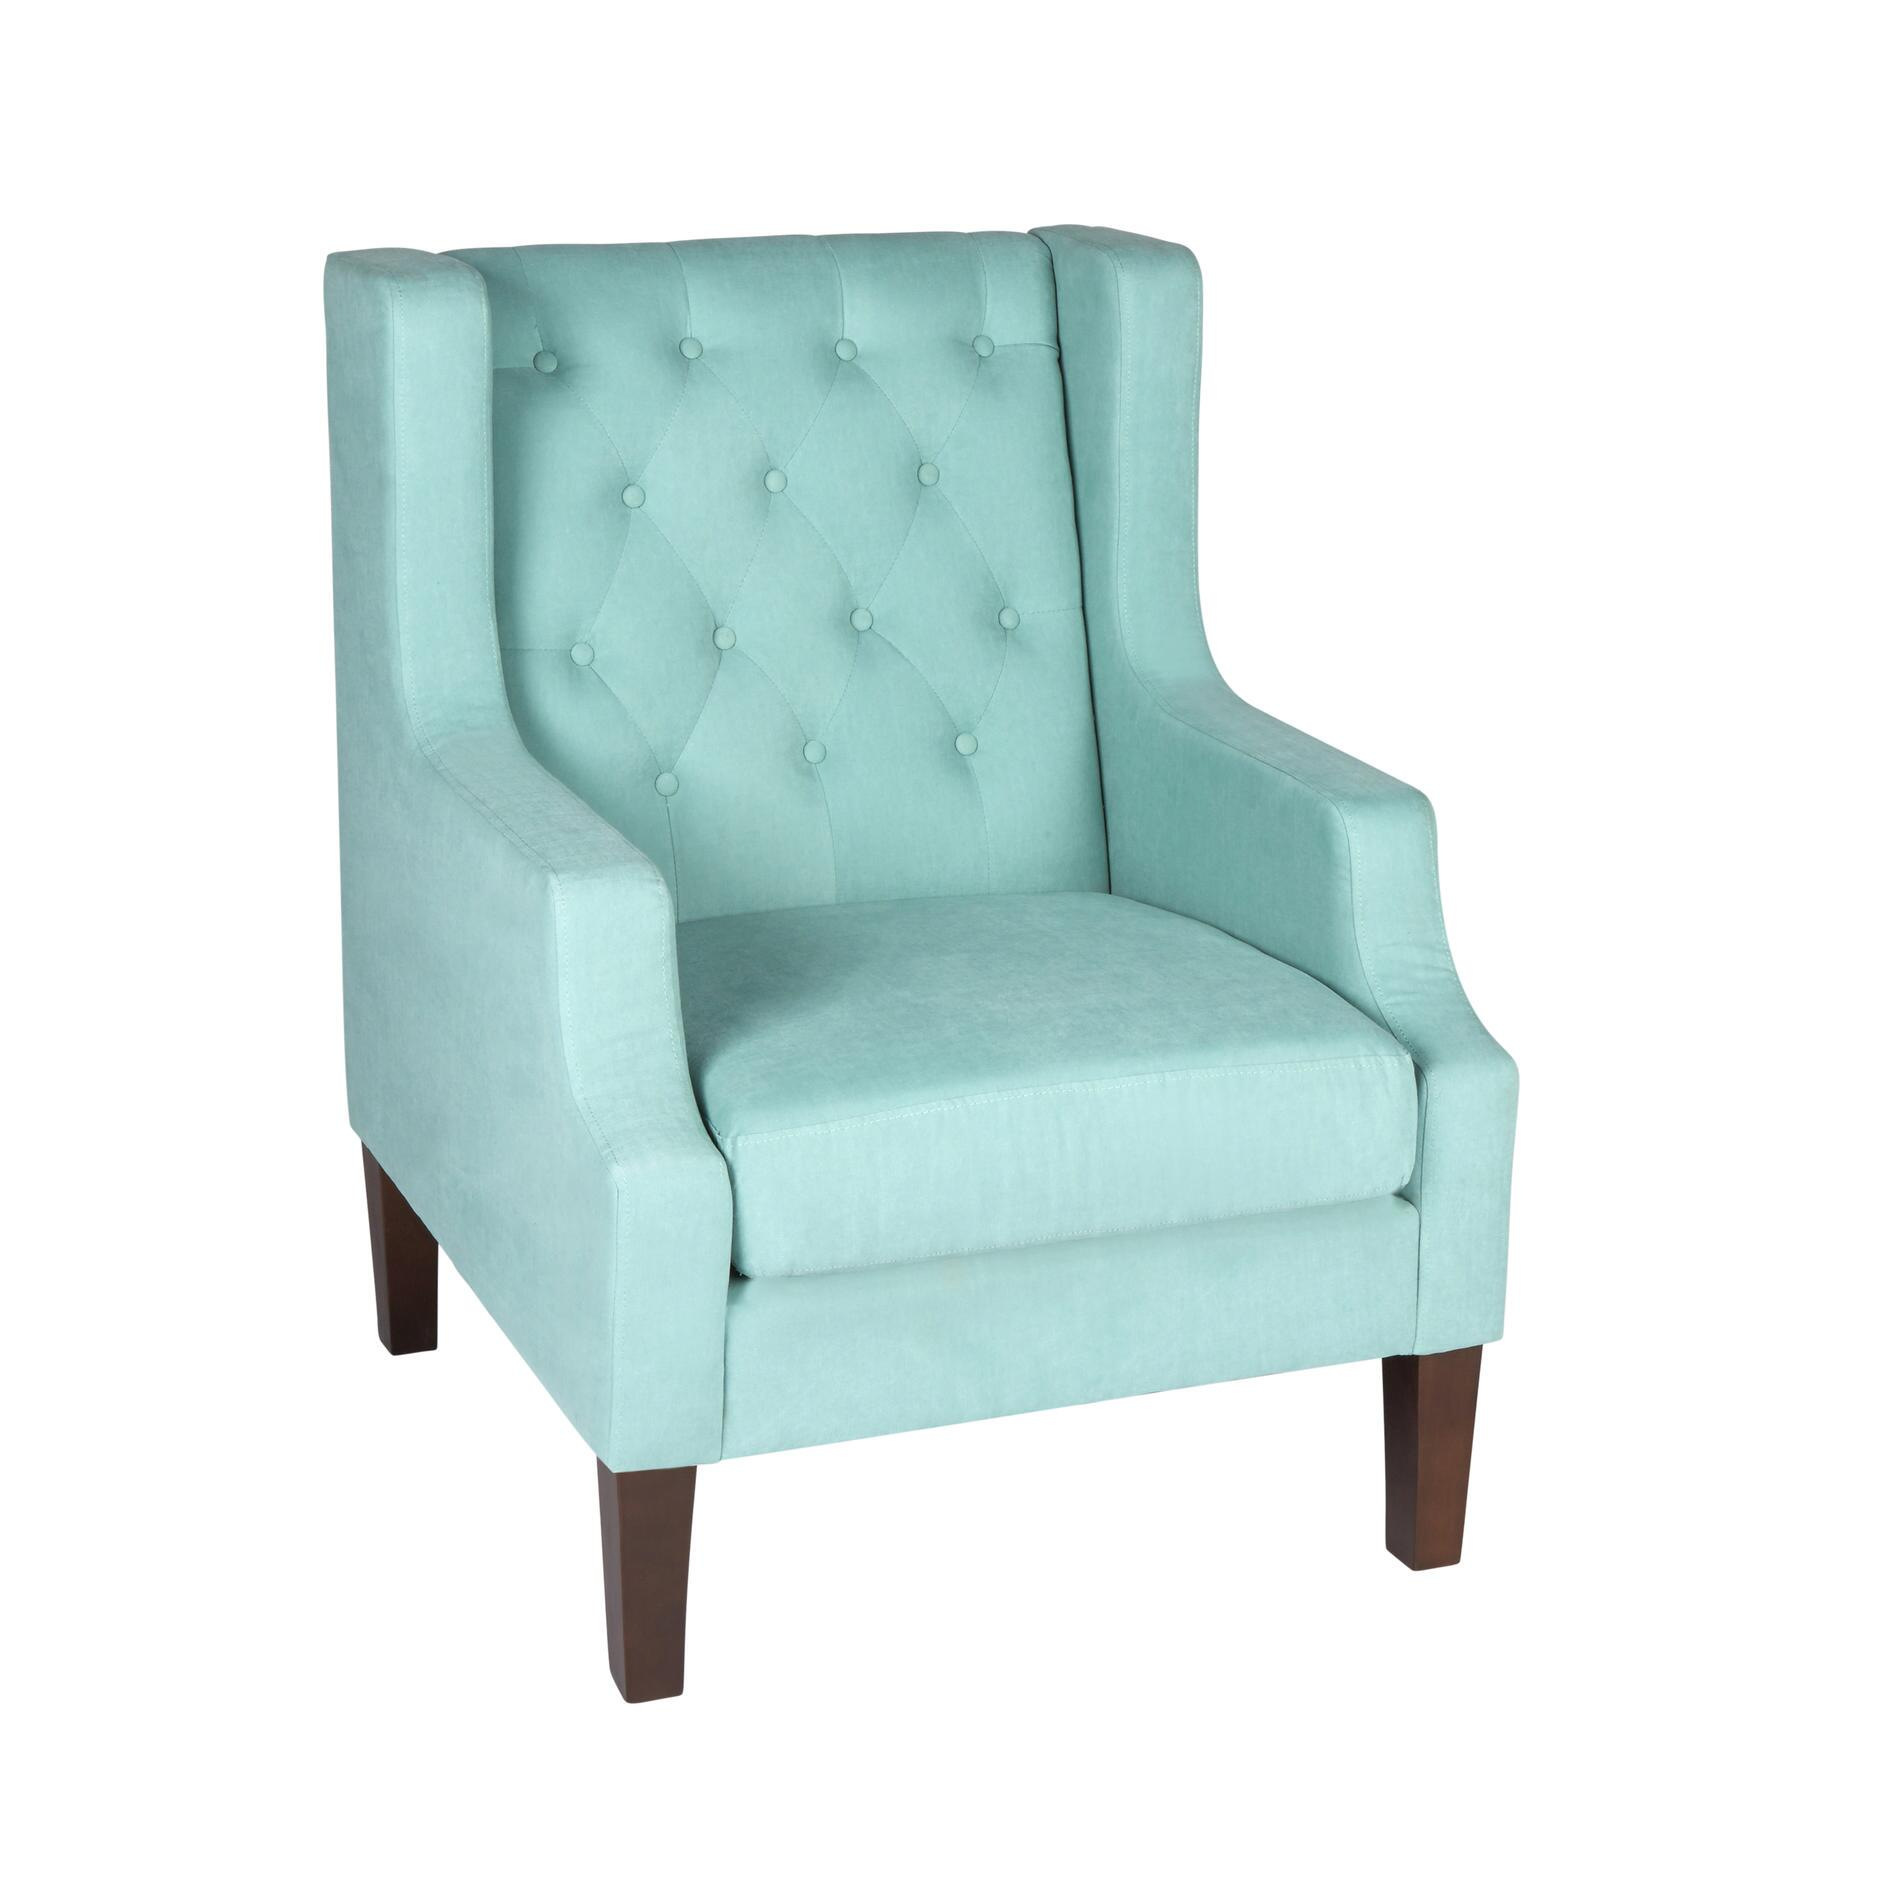 blue green chair amazon baby high accent chairs christmas tree shops and that tufted upholstered wing